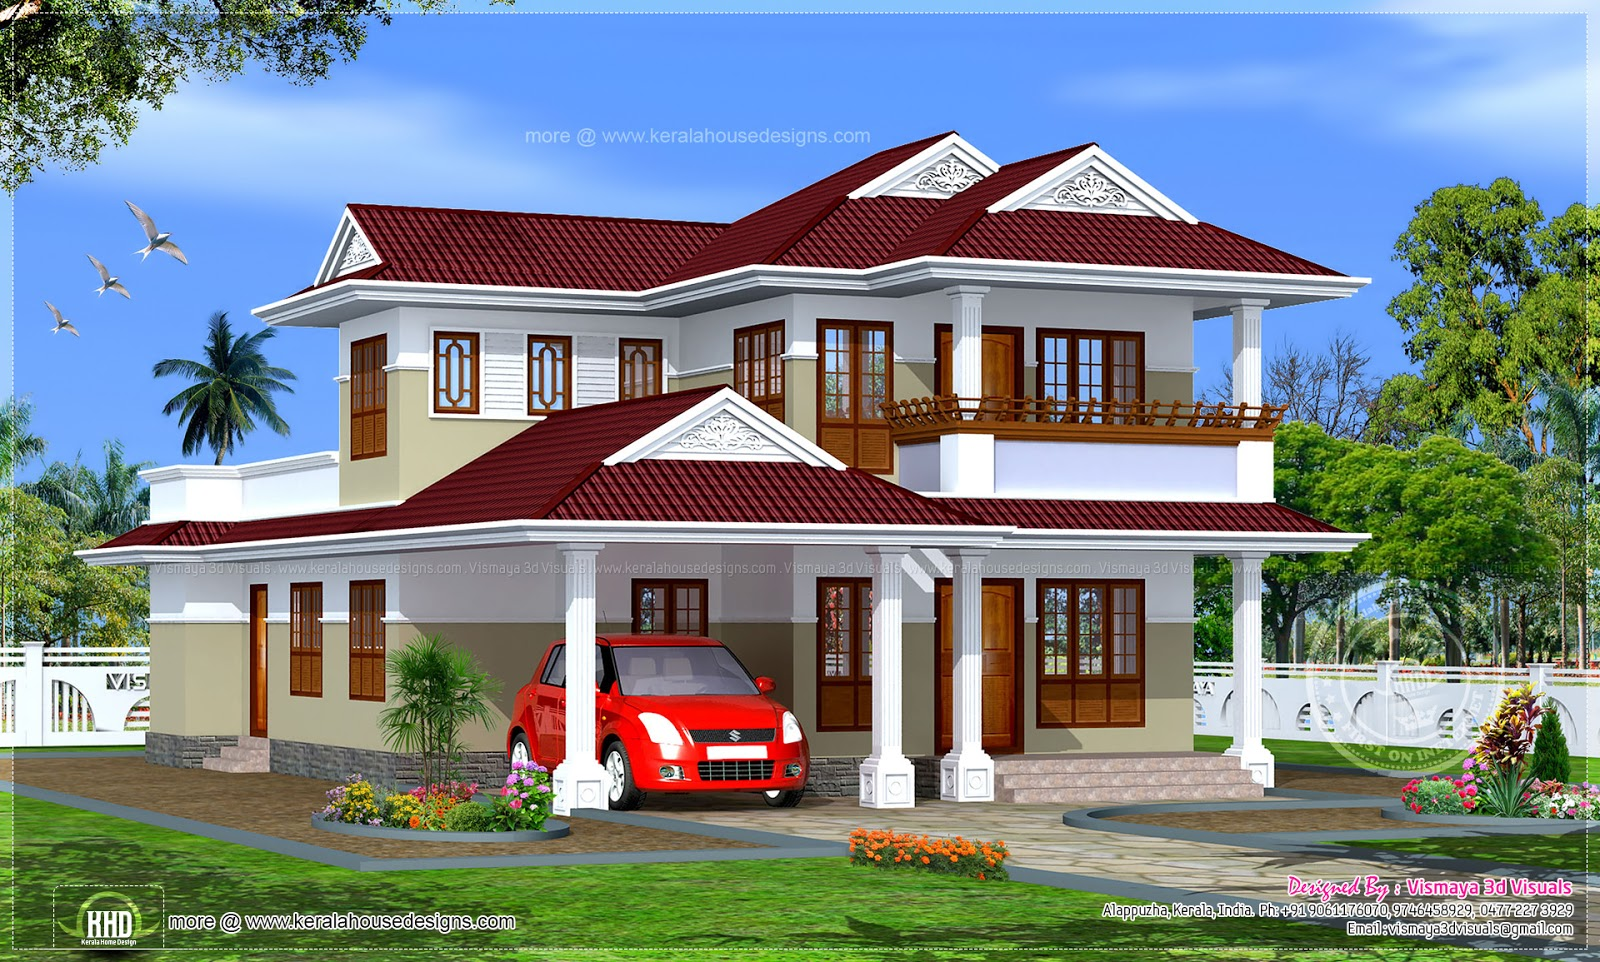 3 bedroom kerala style house in 198 sqm kerala home for Kerala home style 3 bedroom